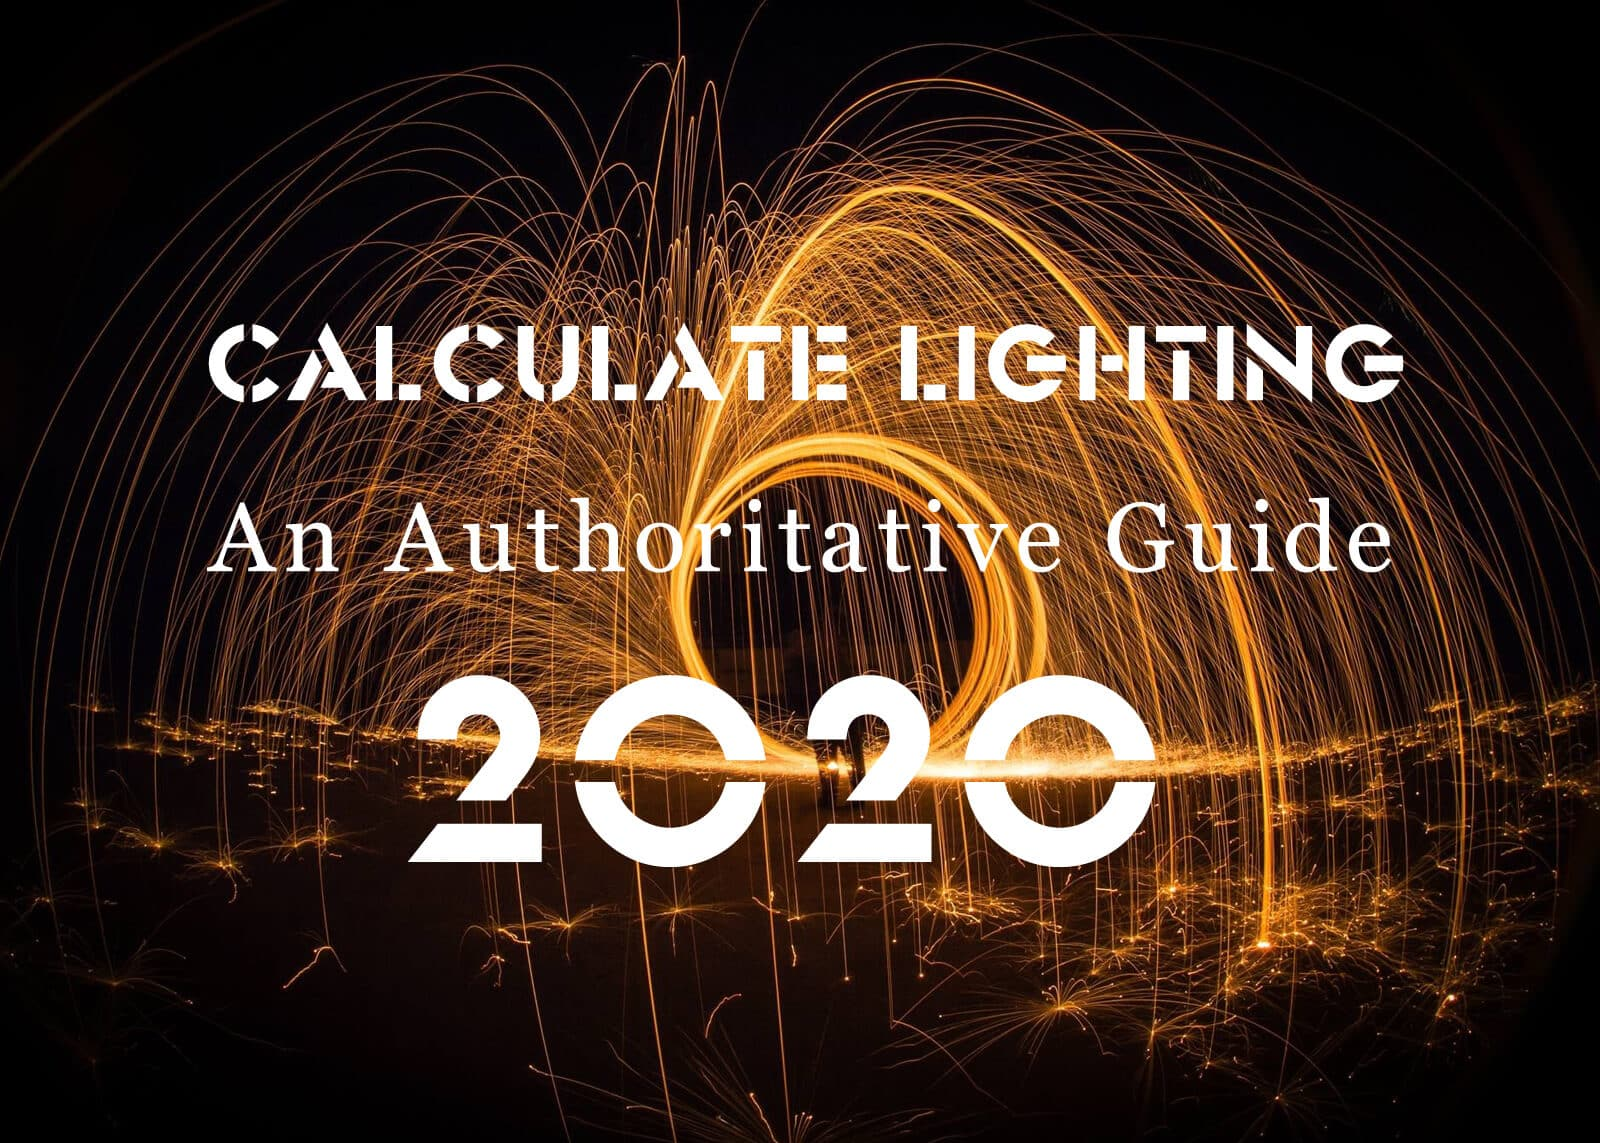 Calculate Lighting An Authoritative Guide